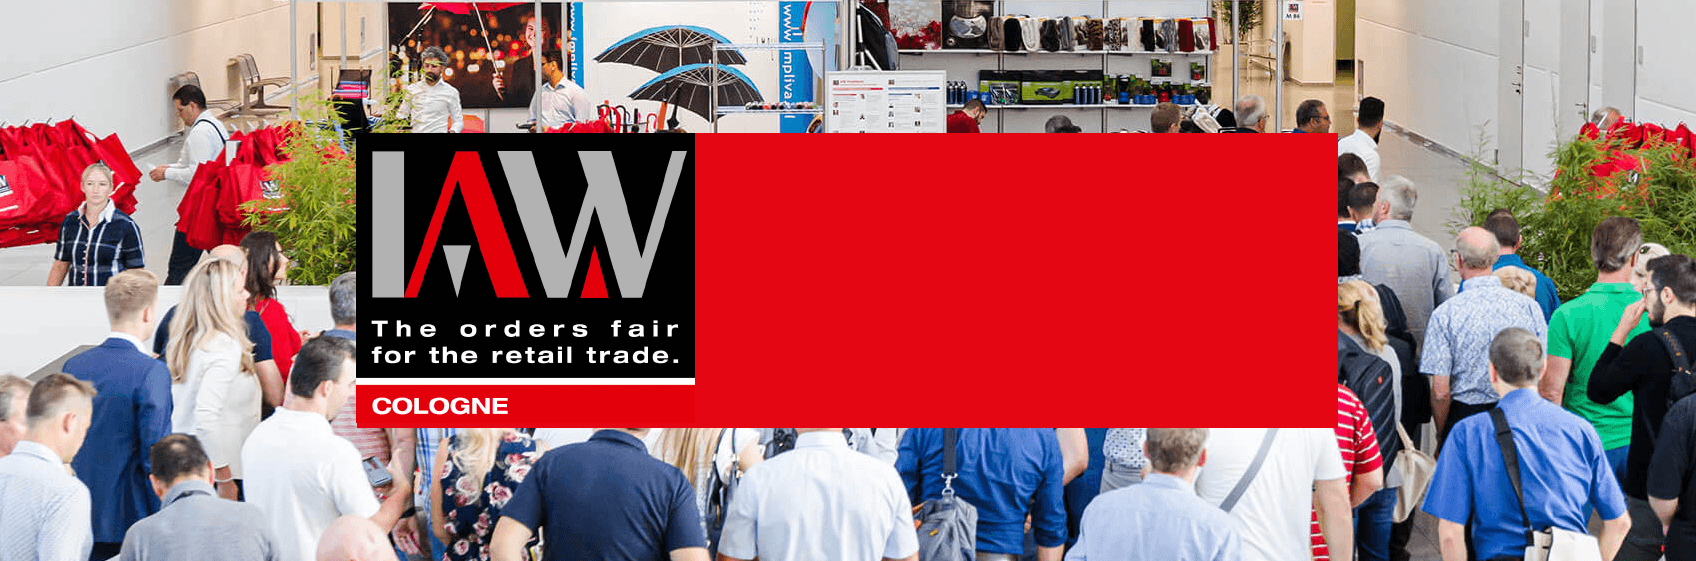 WE'LL BE THERE! IAW Trade Fair